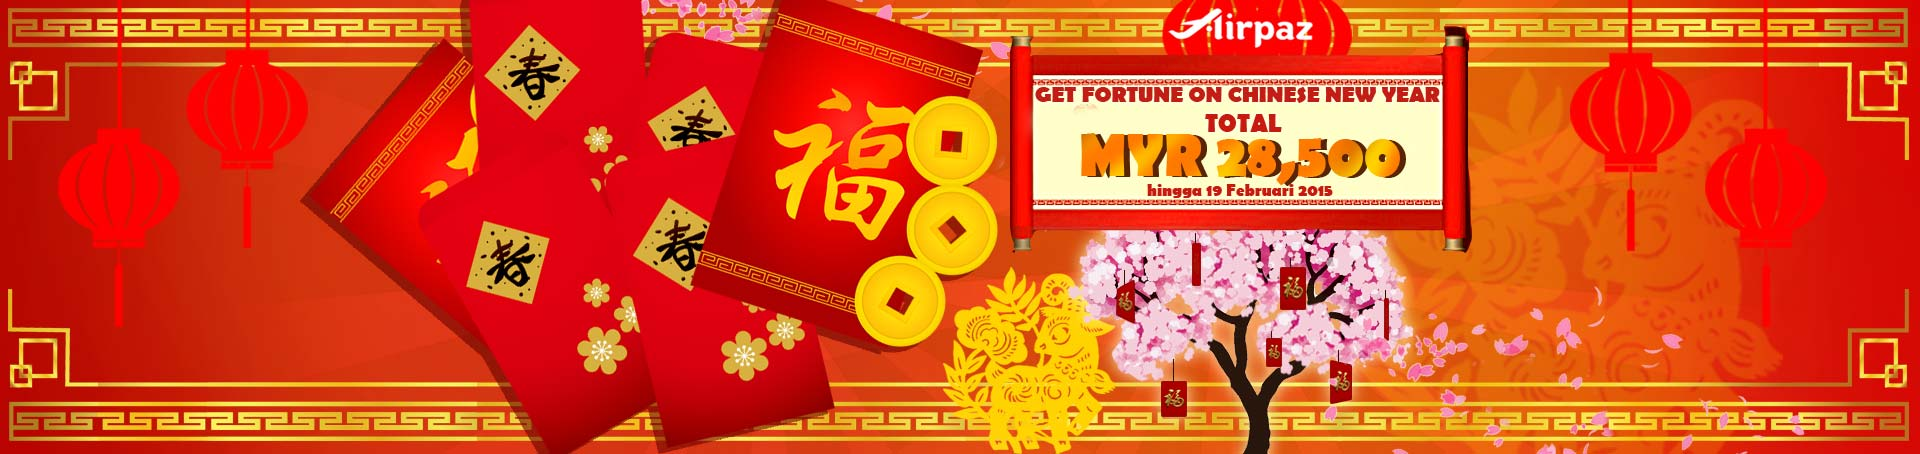 chinese new year RM28500 Malaysia